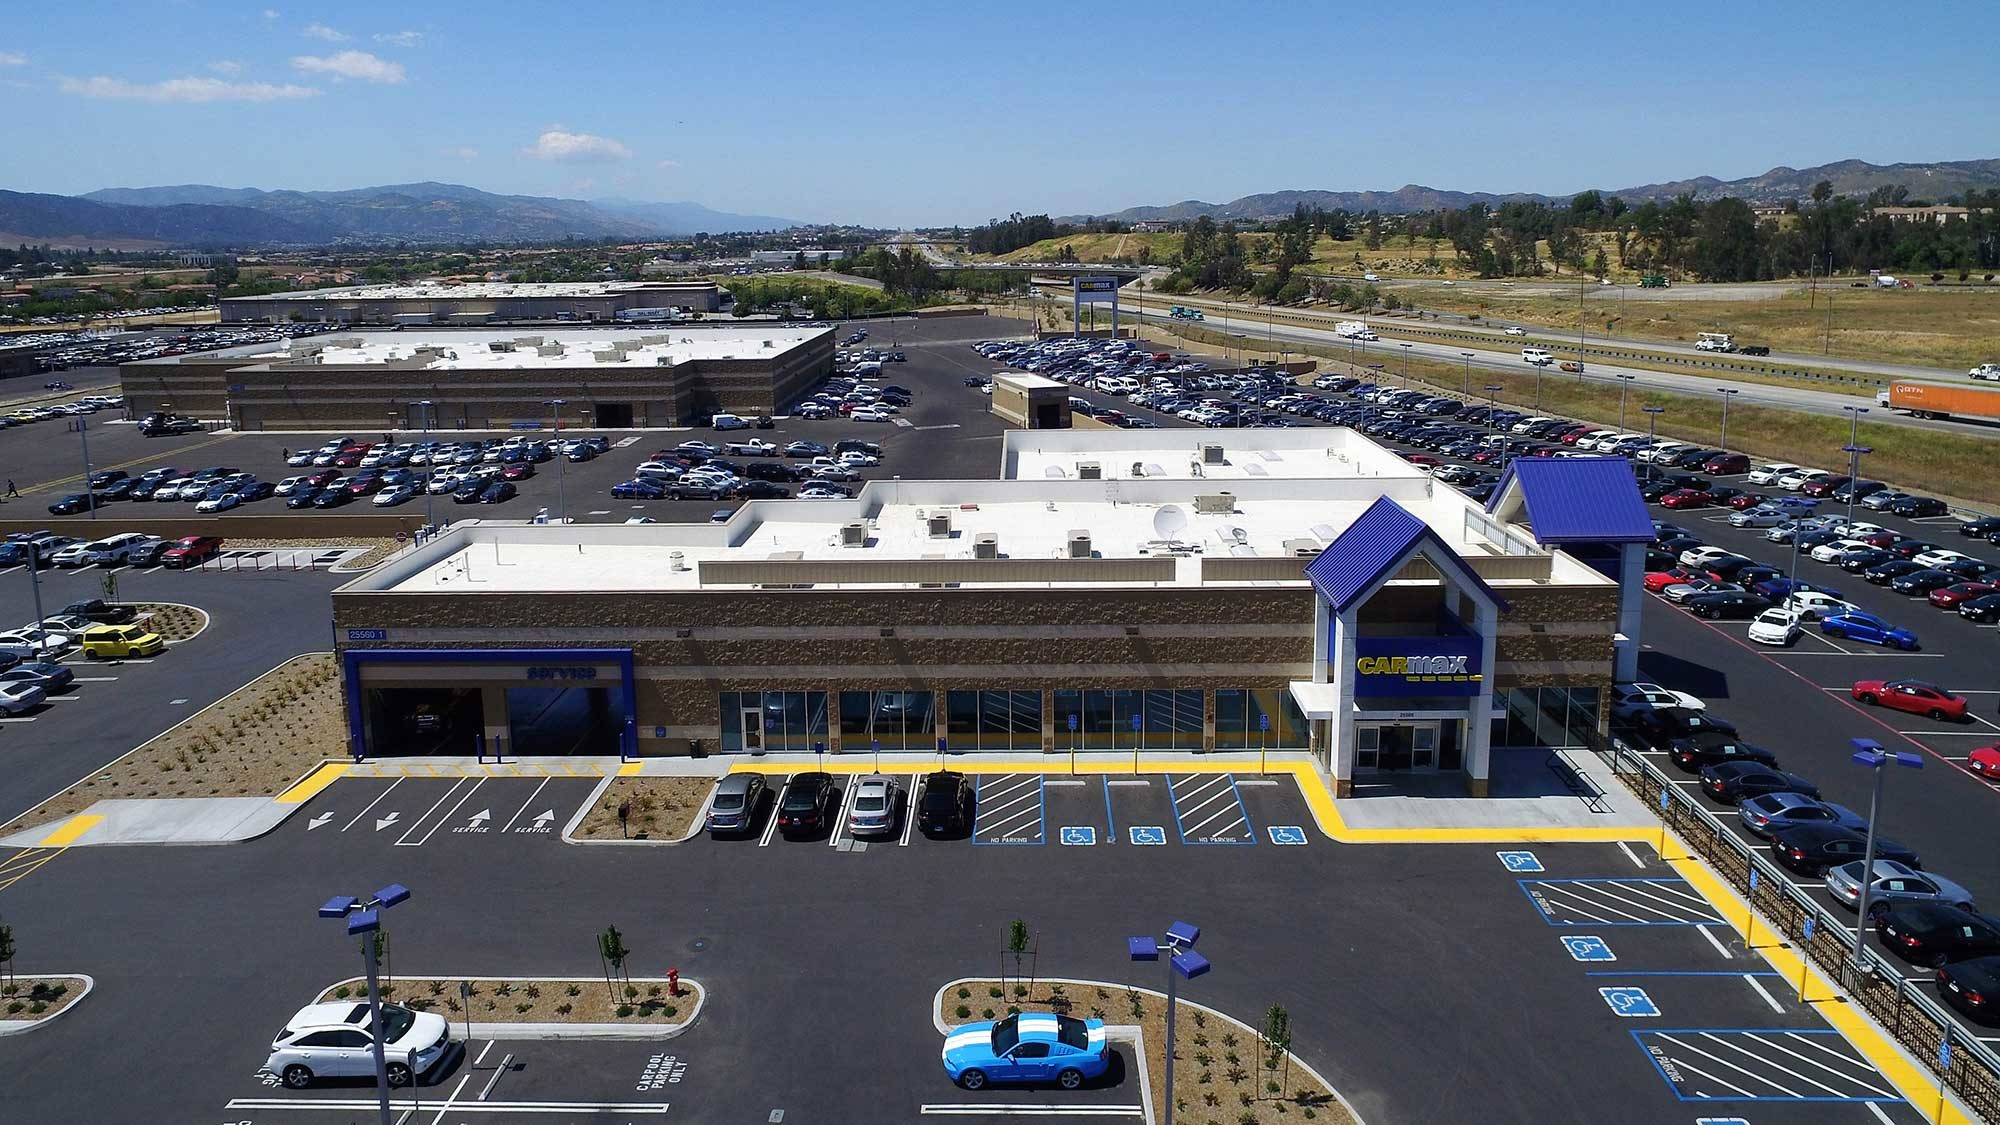 CarMax Murrieta, California